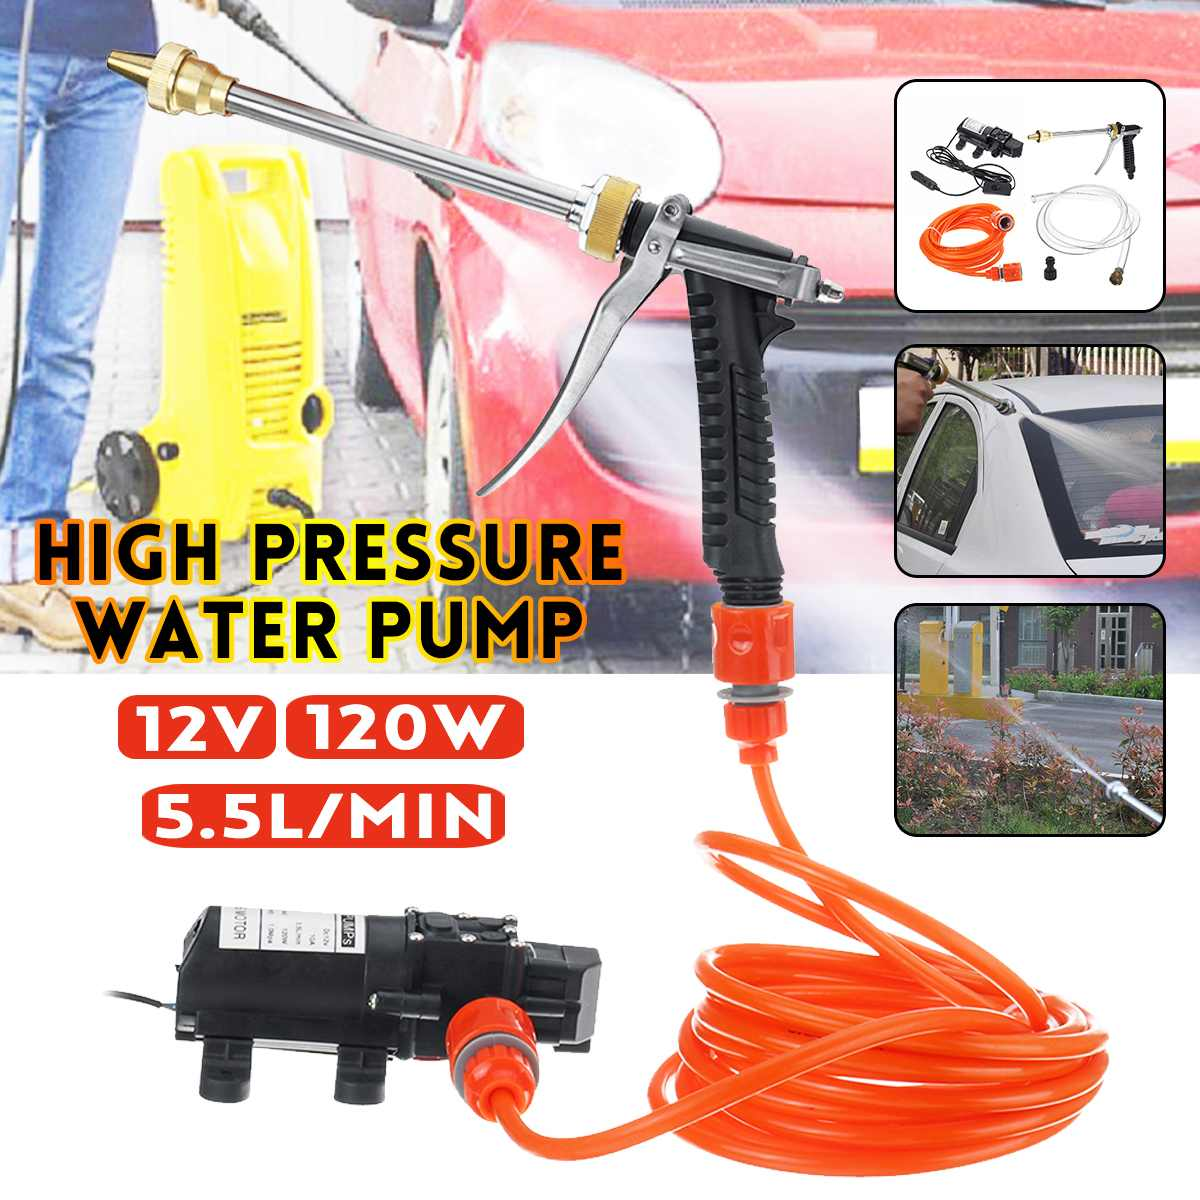 12V 120W Car Washer Pump High Pressure Car Electric Washer Wash Pump Set Portable Auto Washing Machine Kit Washer Sprayer